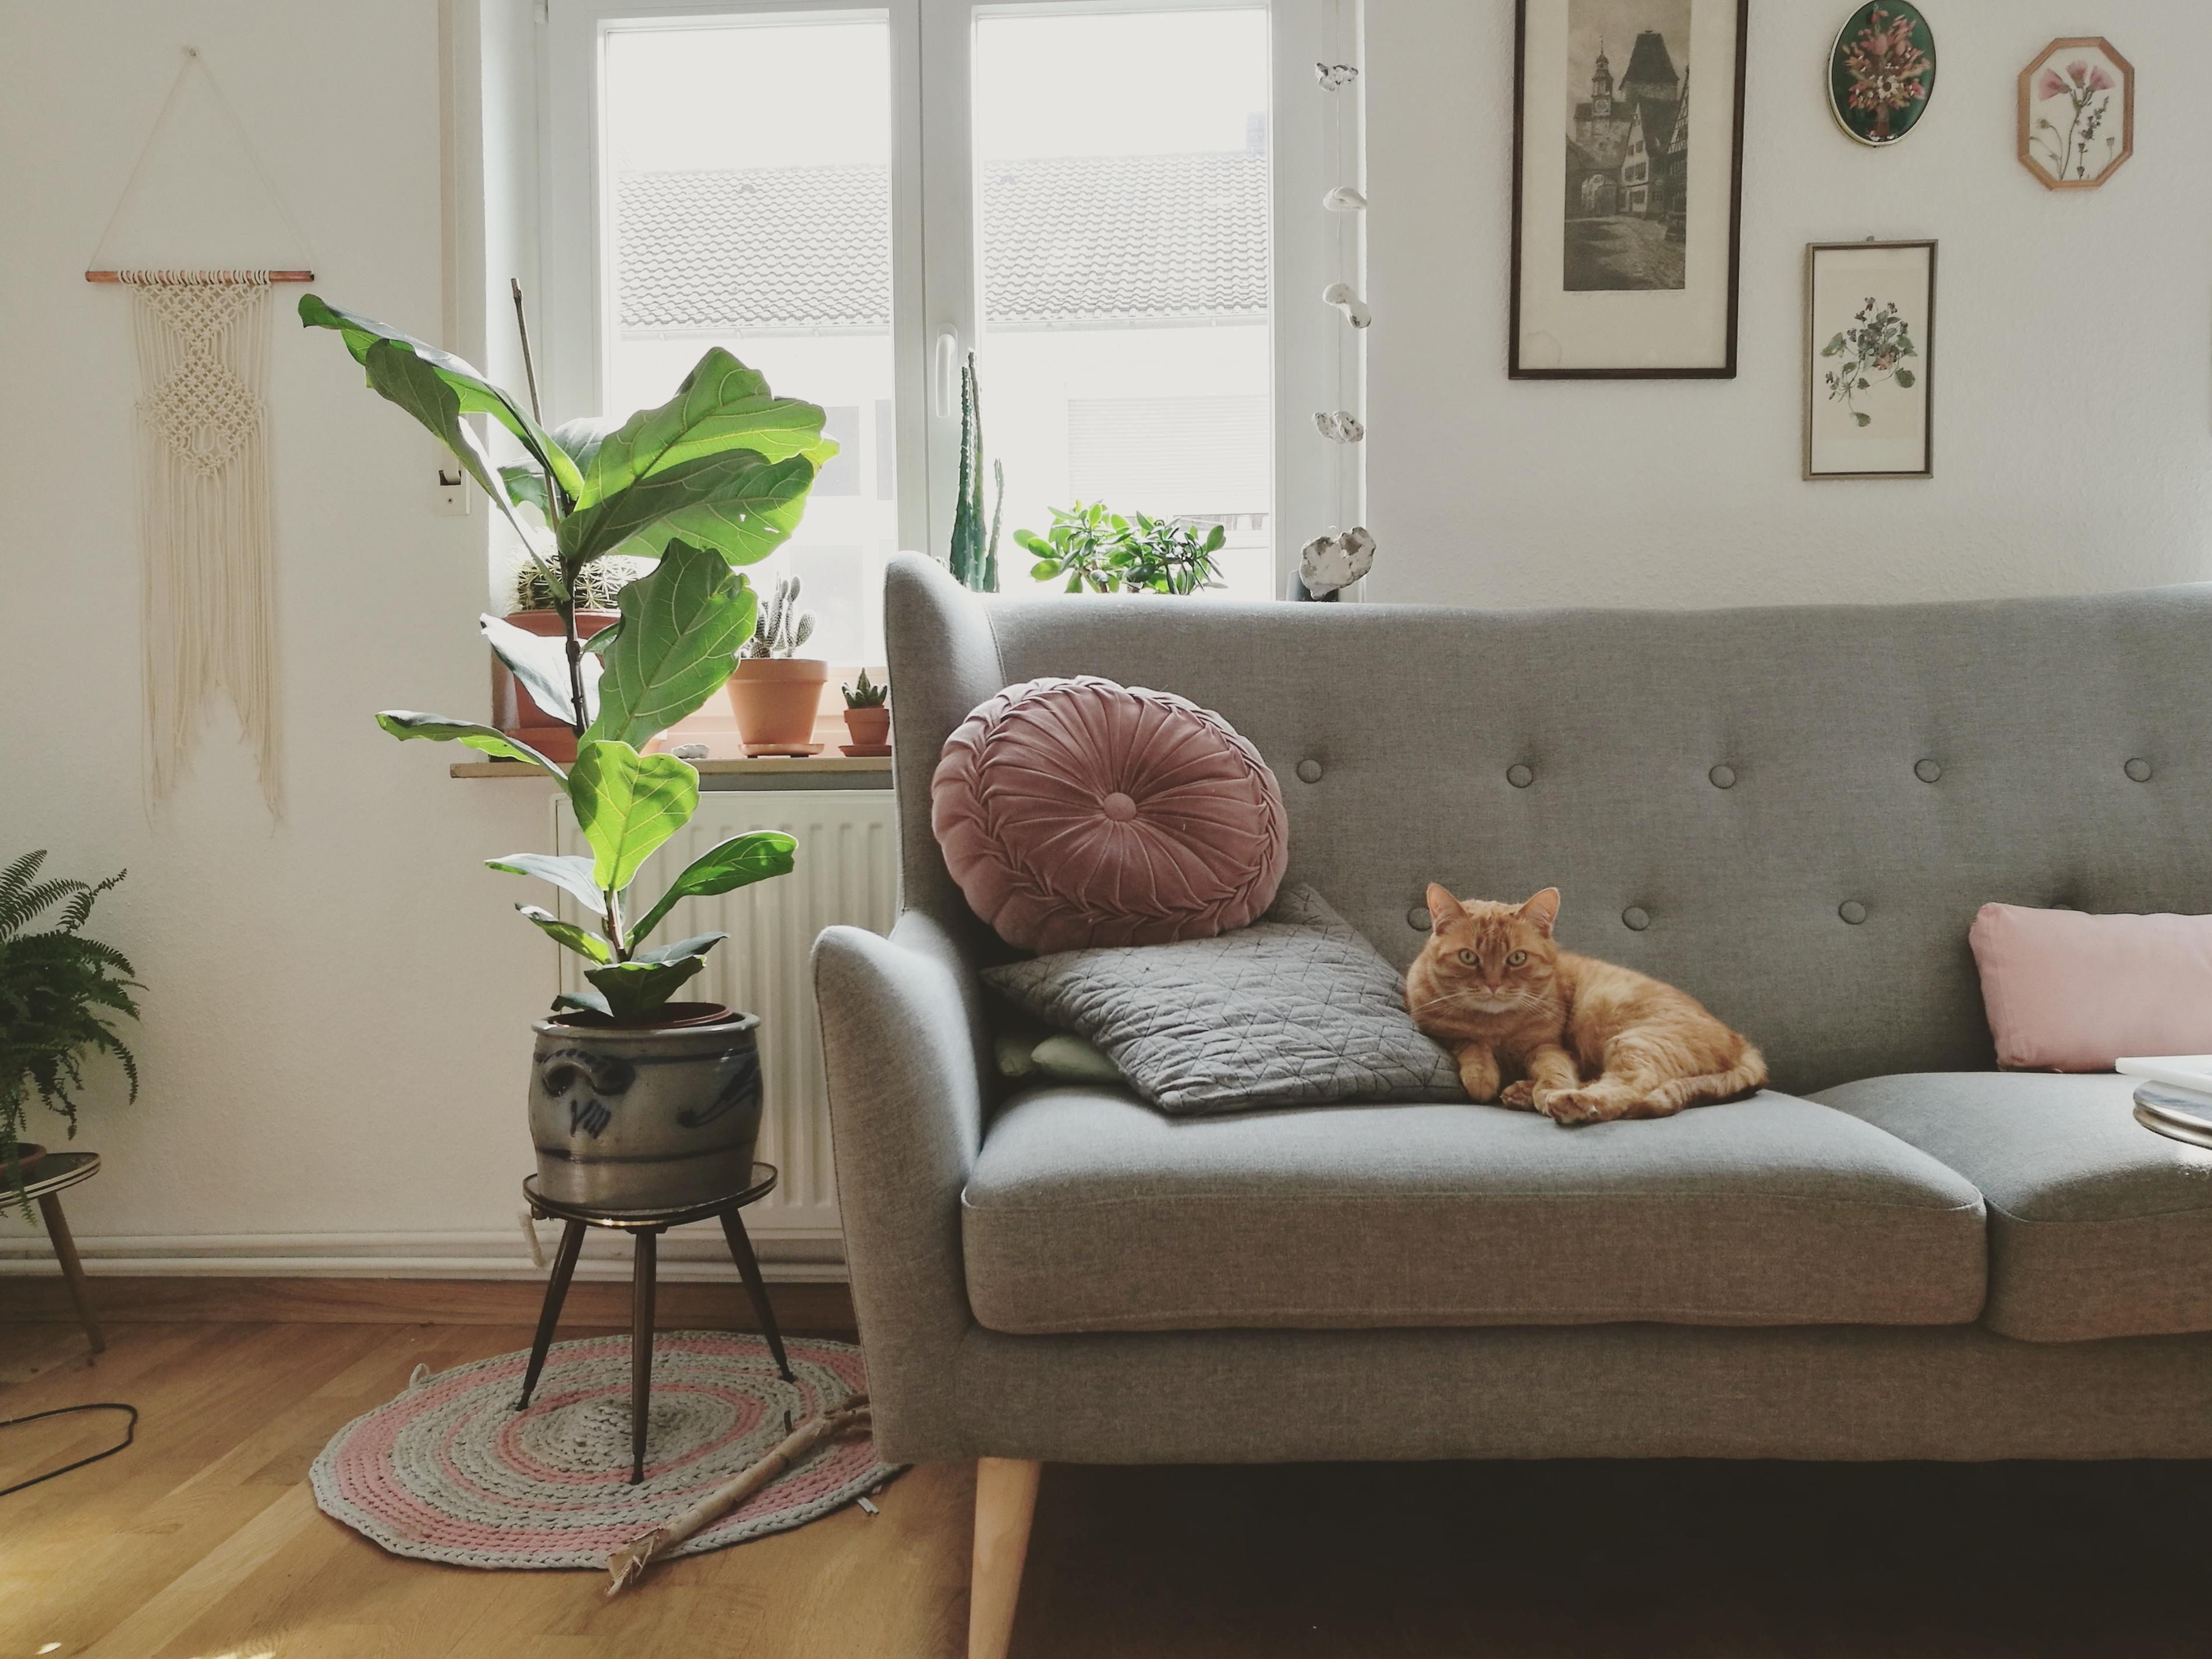 Couch katze cat ginger wohnzimmer  115c97c5 4c63 46b1 a2ab 81749520a4fb